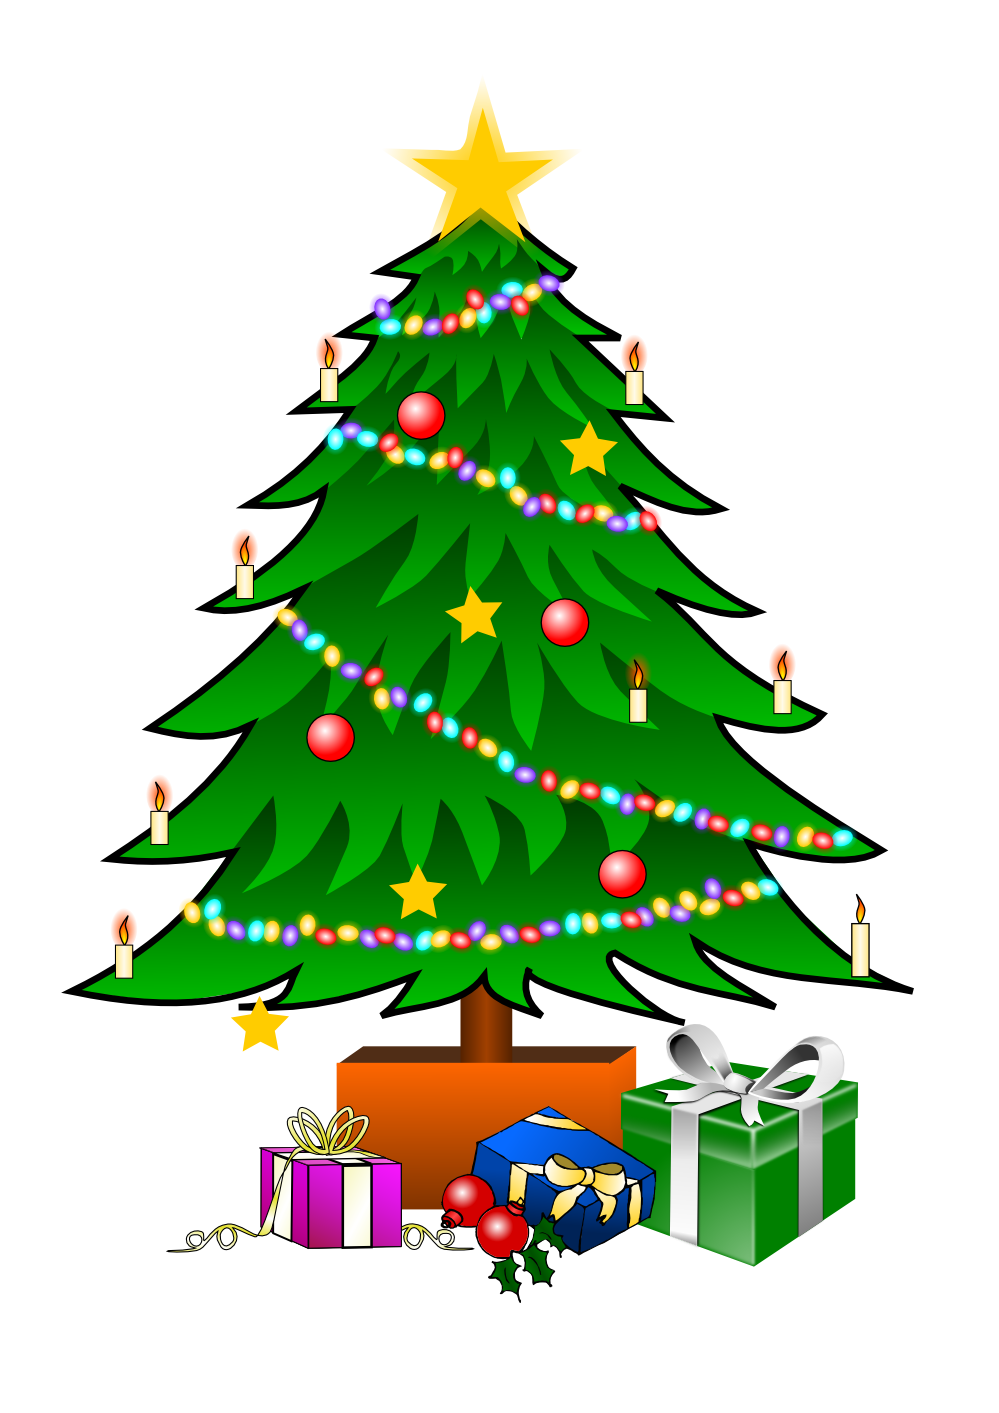 Stick tree clipart vector This nice Christmas tree with presents clip art can be used for ... vector